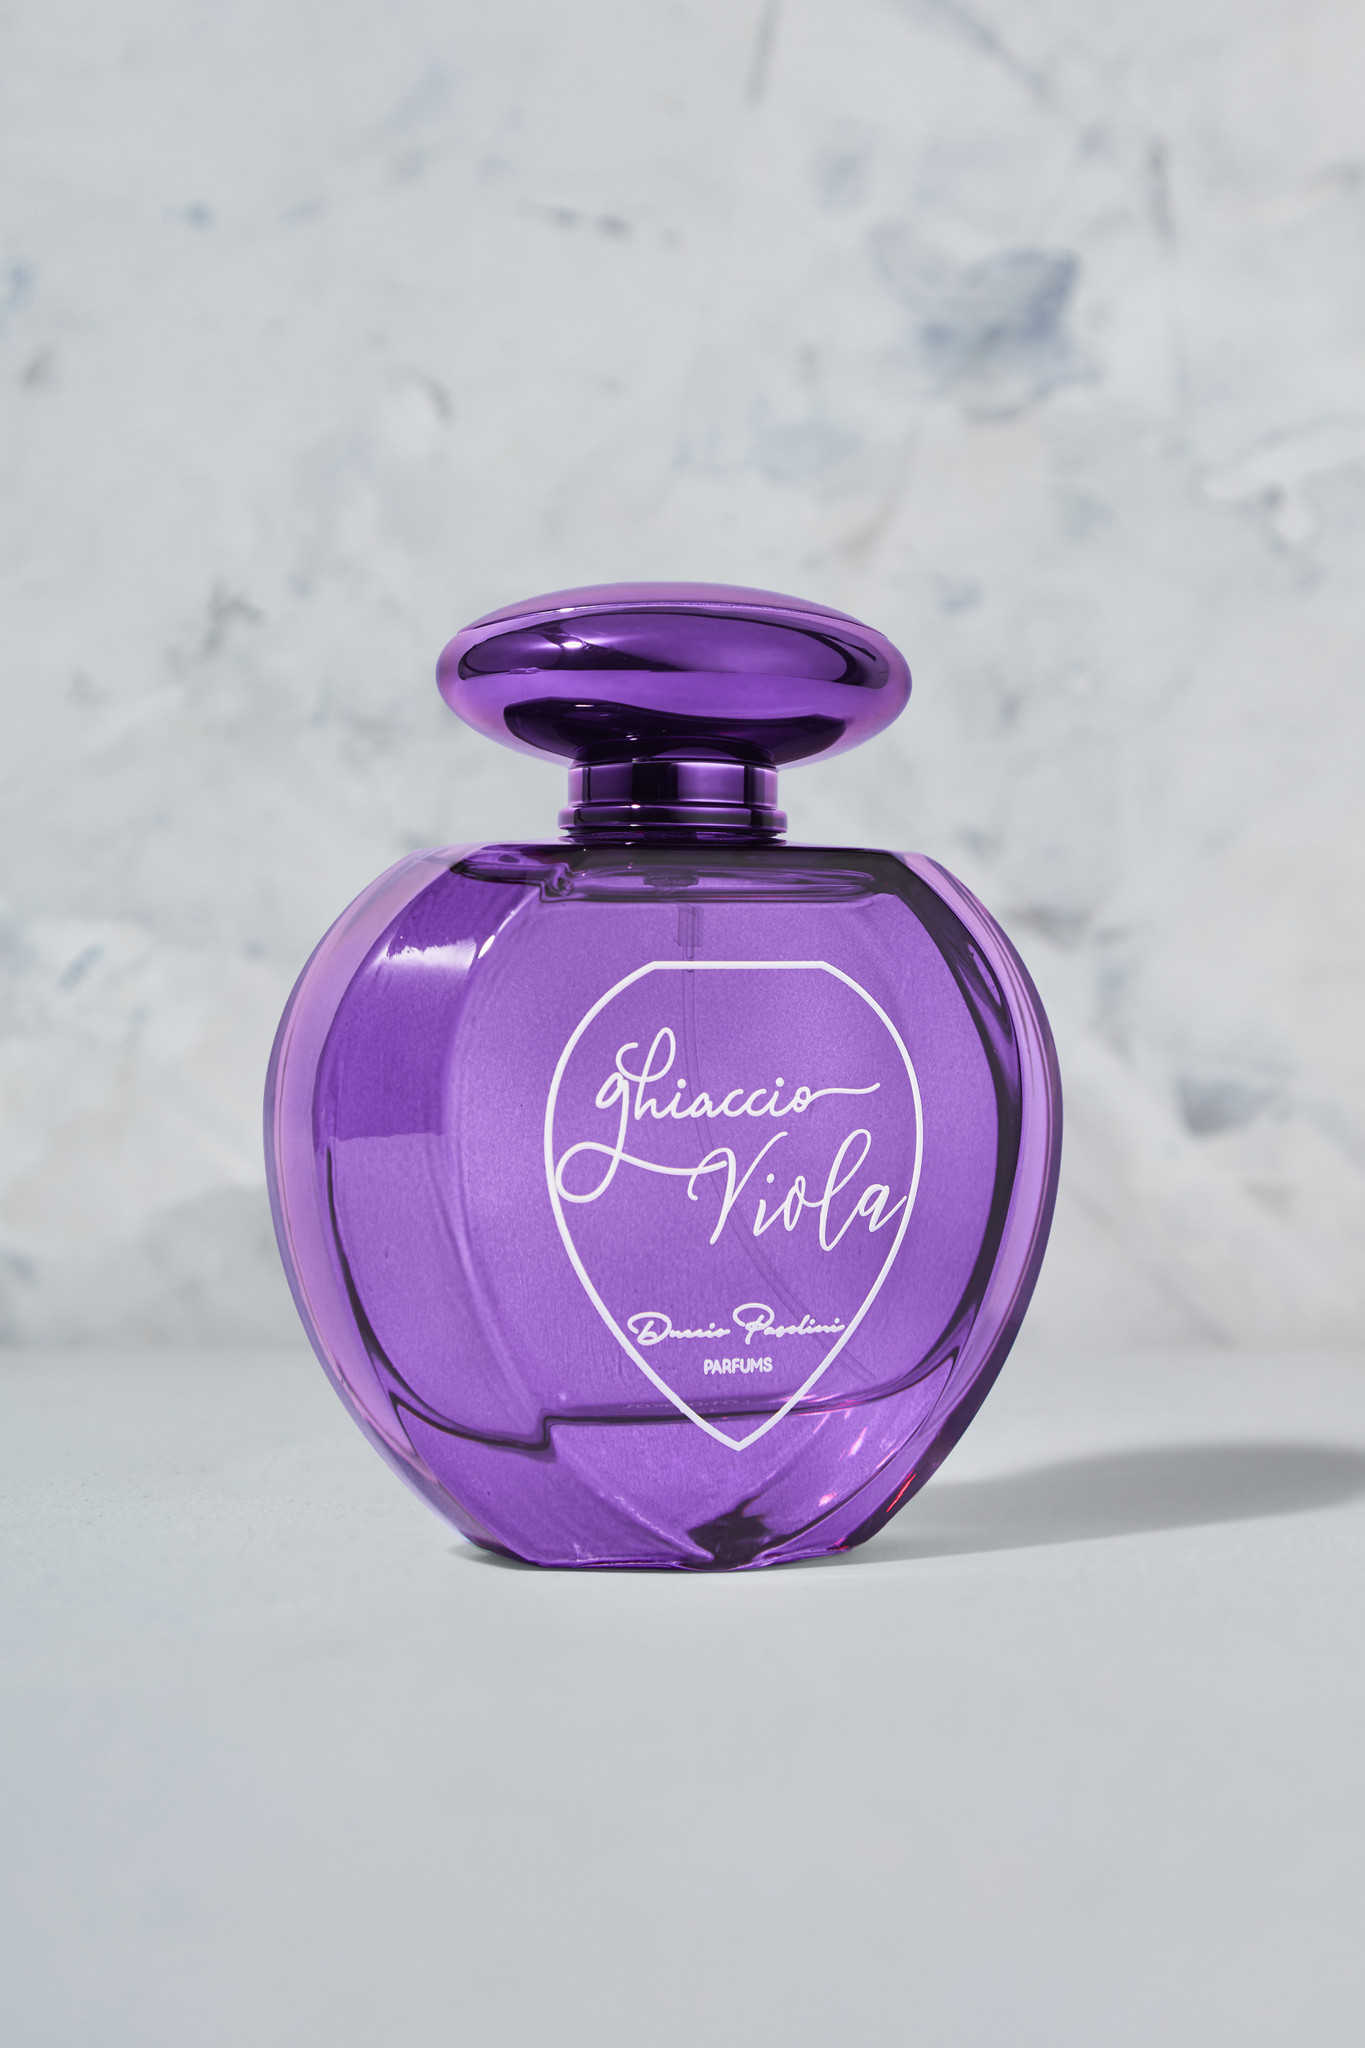 Ghiaccio Viola (Purple Ice) leads with a polished blend of citrus, fruit and floral notations for the vibrant and compassionate woman. Designed for women who enjoy the sensual and passionate aspects of life. This symphony begins with luscious green apple, citrus and juicy white peach, followed by watermelon with delicate rose water, and ending with notes of sandalwood and musk.  Top Notes: Green Apple, Lemon, Tangerine, and White Peach. Middle Notes: Rose Water & Watermelon. Base Notes: Sandalwood and White Musk. Key Notes: Citrus, Fruity, Rose, Aquatic, Woody, & Ozonic.